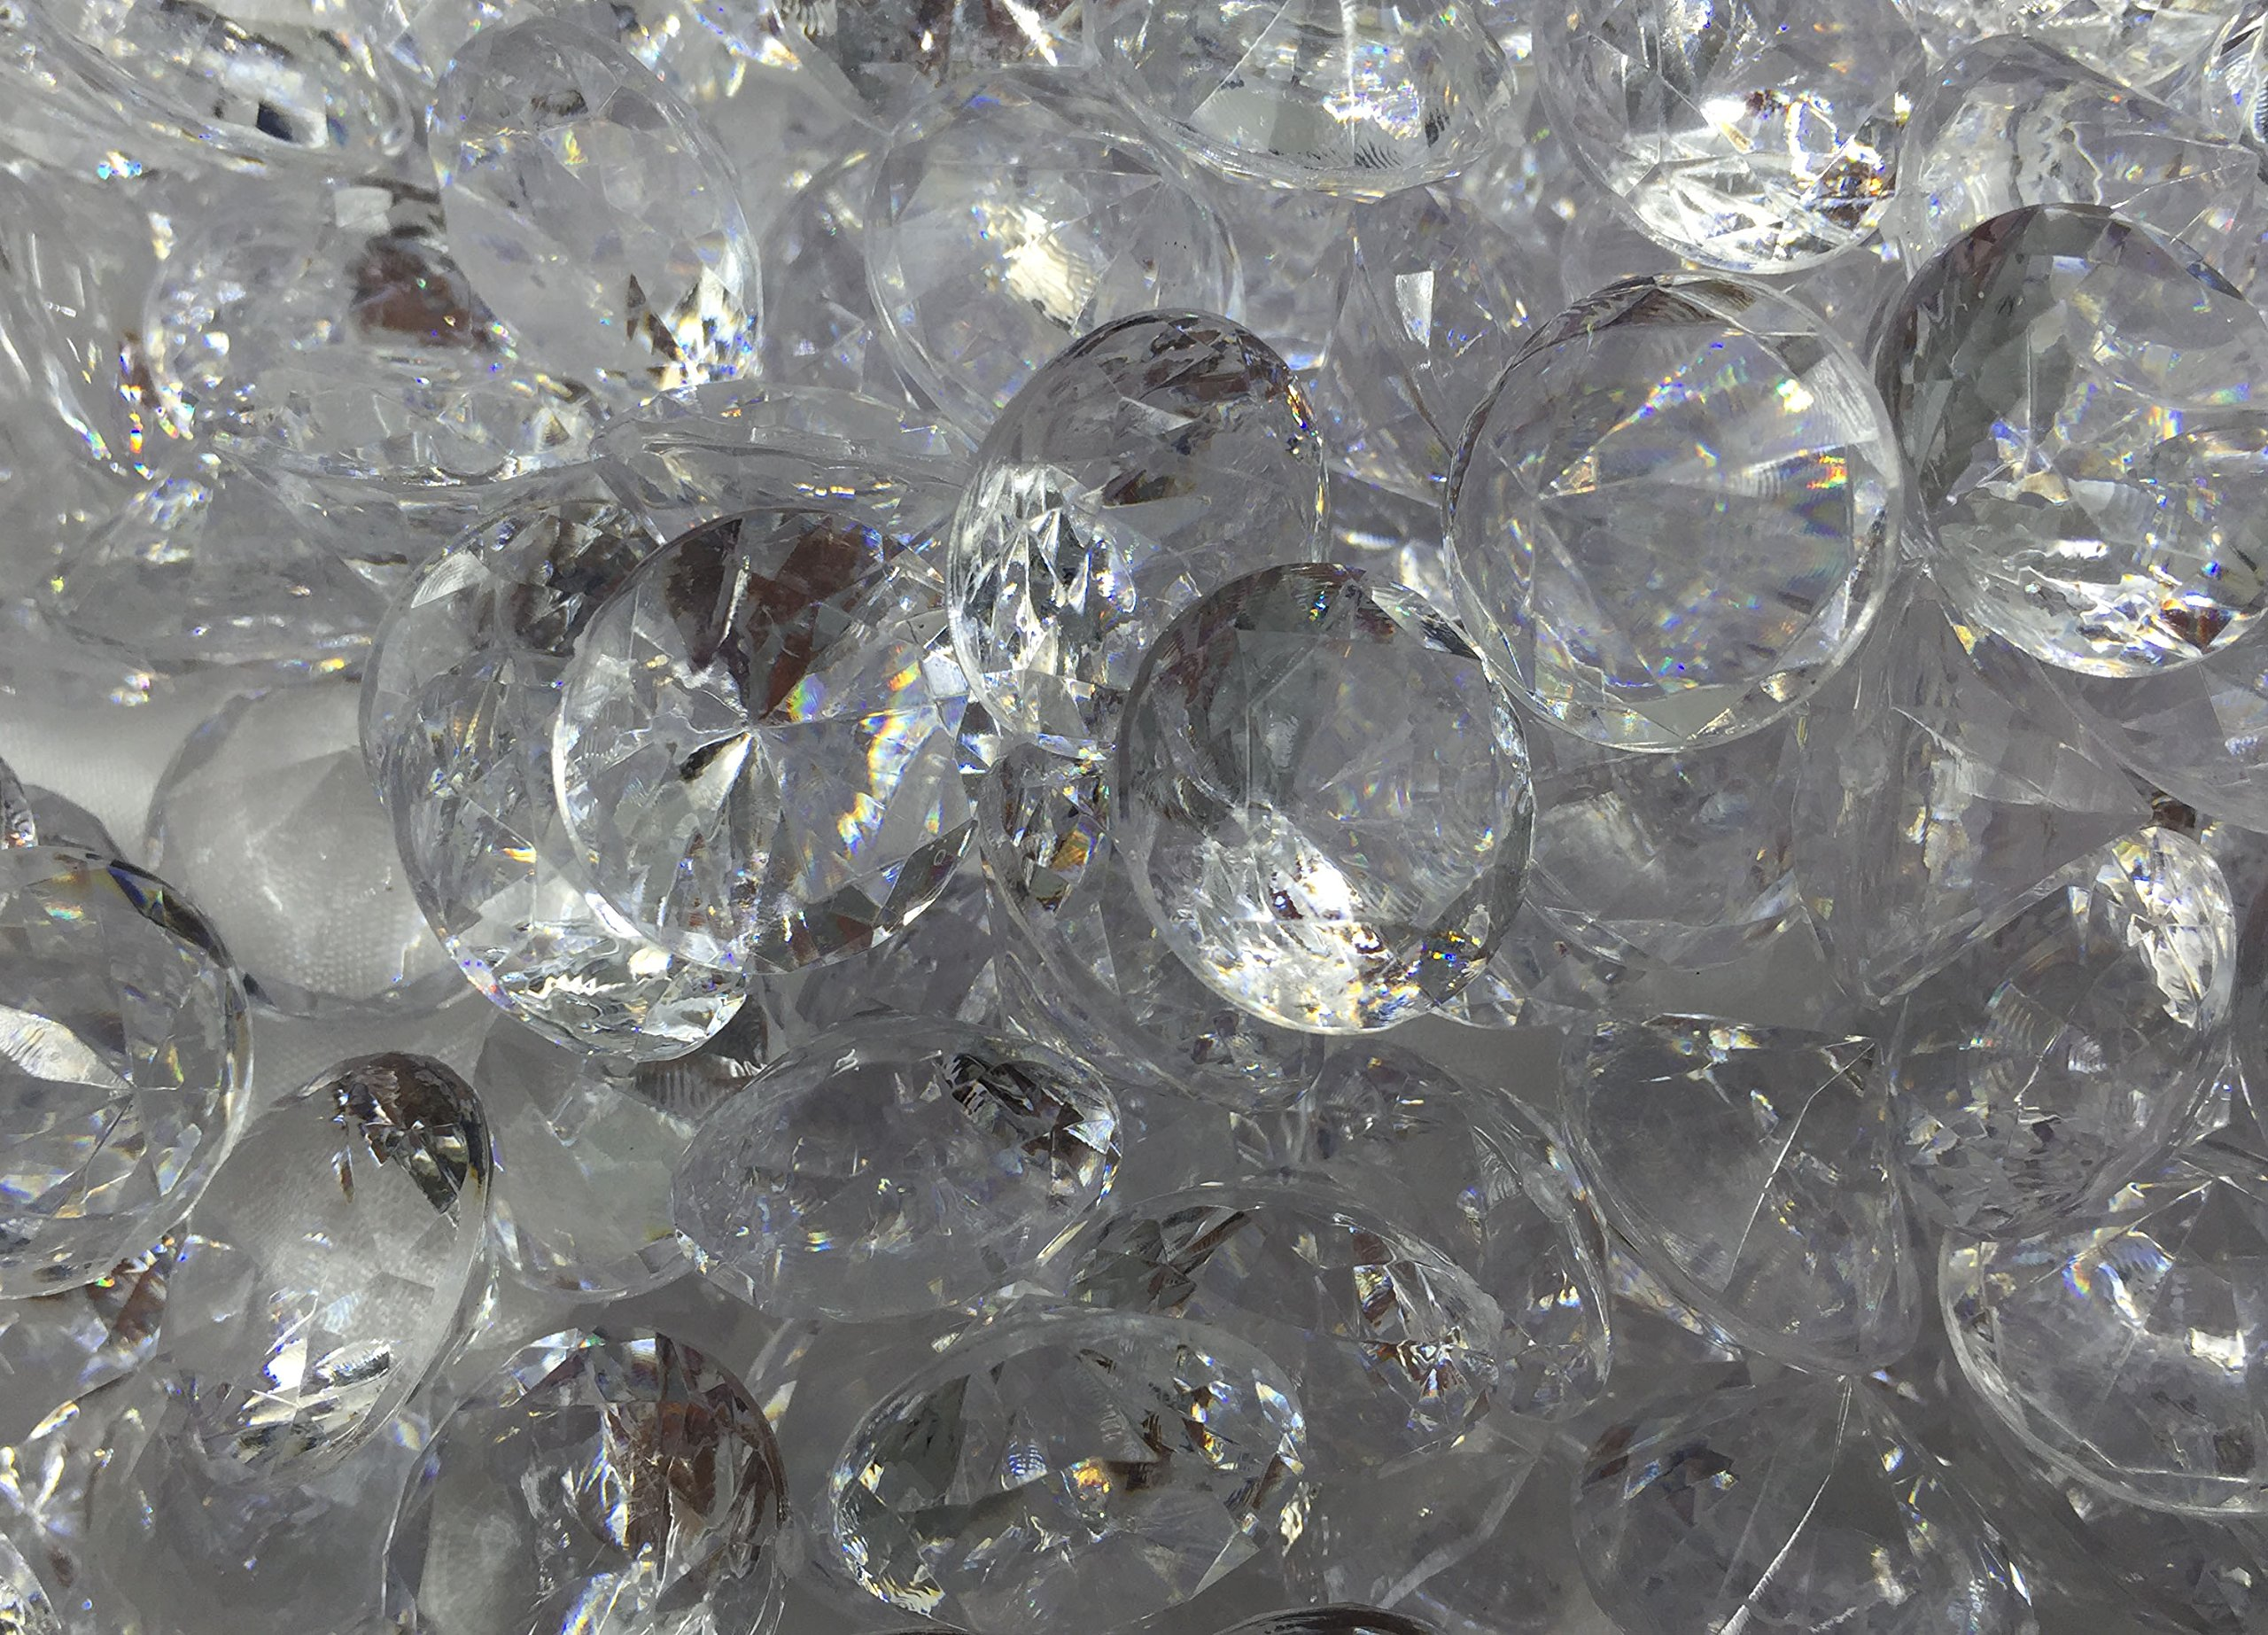 480+ Pieces 20mm Crystal Clear Acrylic Diamond Shape Jewels for Party Decoration ,Event ,Wedding , Vase Fillers, Arts & Crafts by SunRise (Image #6)